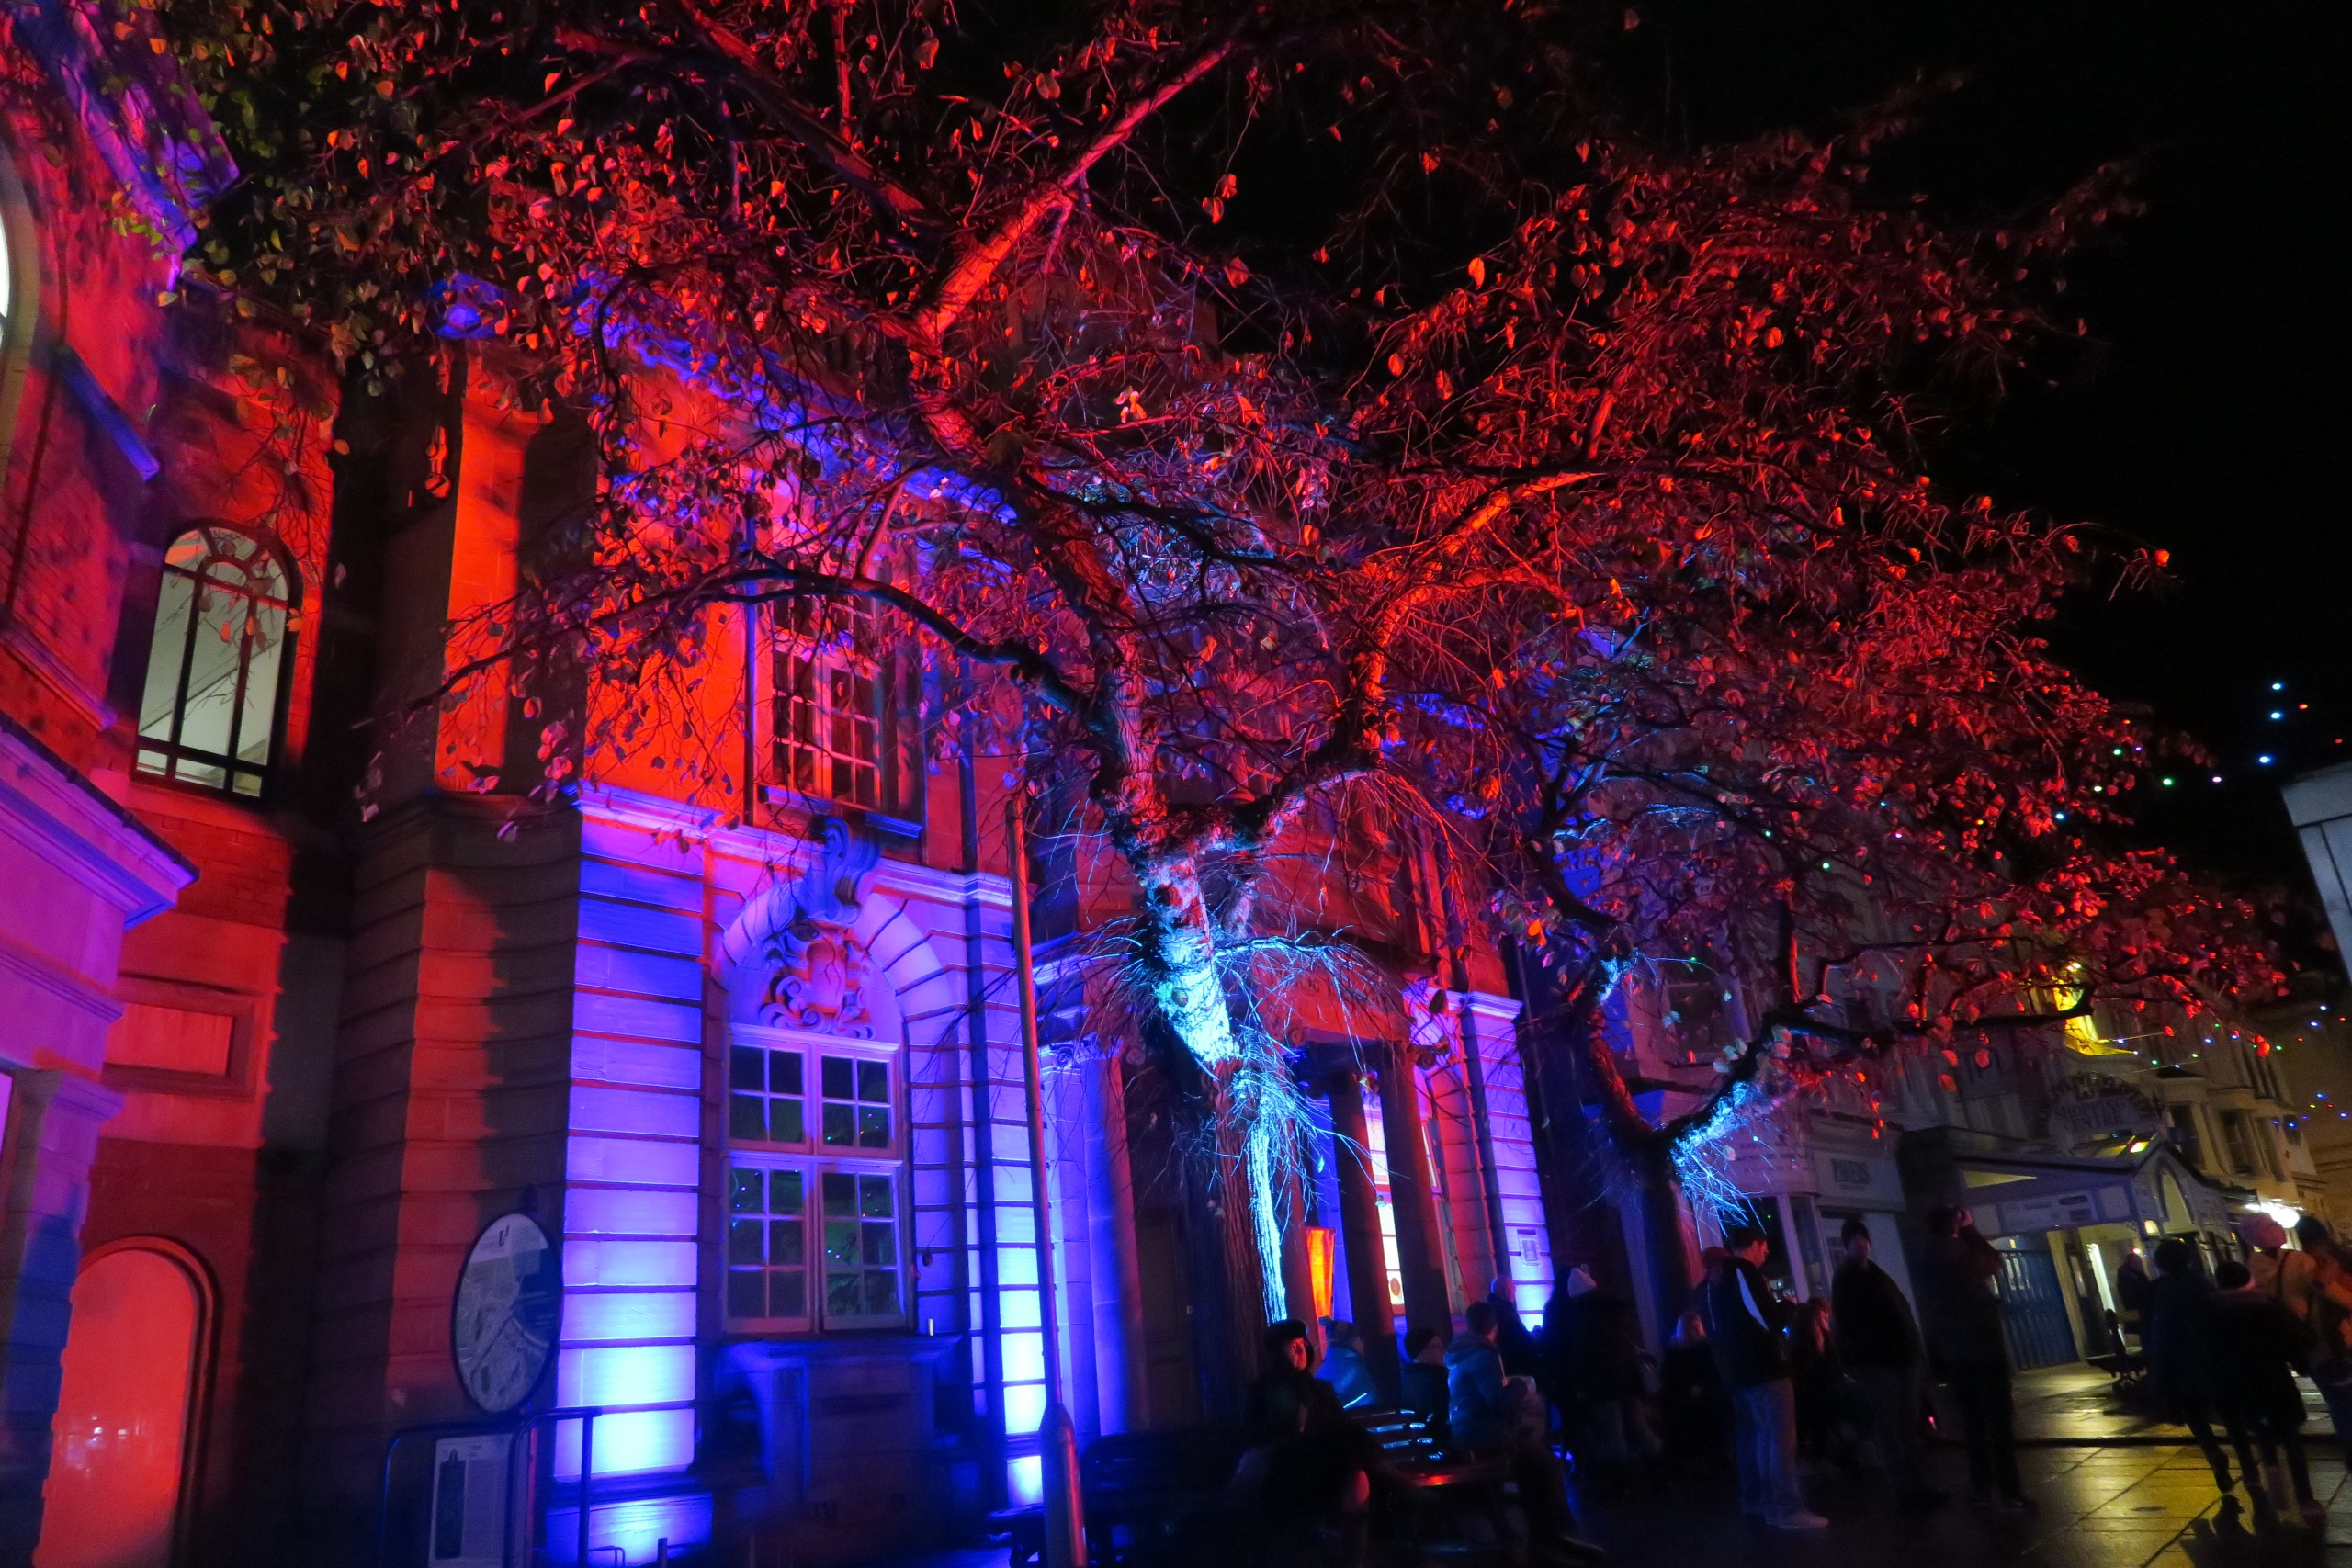 Coloured outdoor lighting at the Llandudno Winter Light / Golau Gaeaf event, in North Wales. The Library on Mostyn Steet is illuminated in red and blue, by weatherproof LED flood lighting.